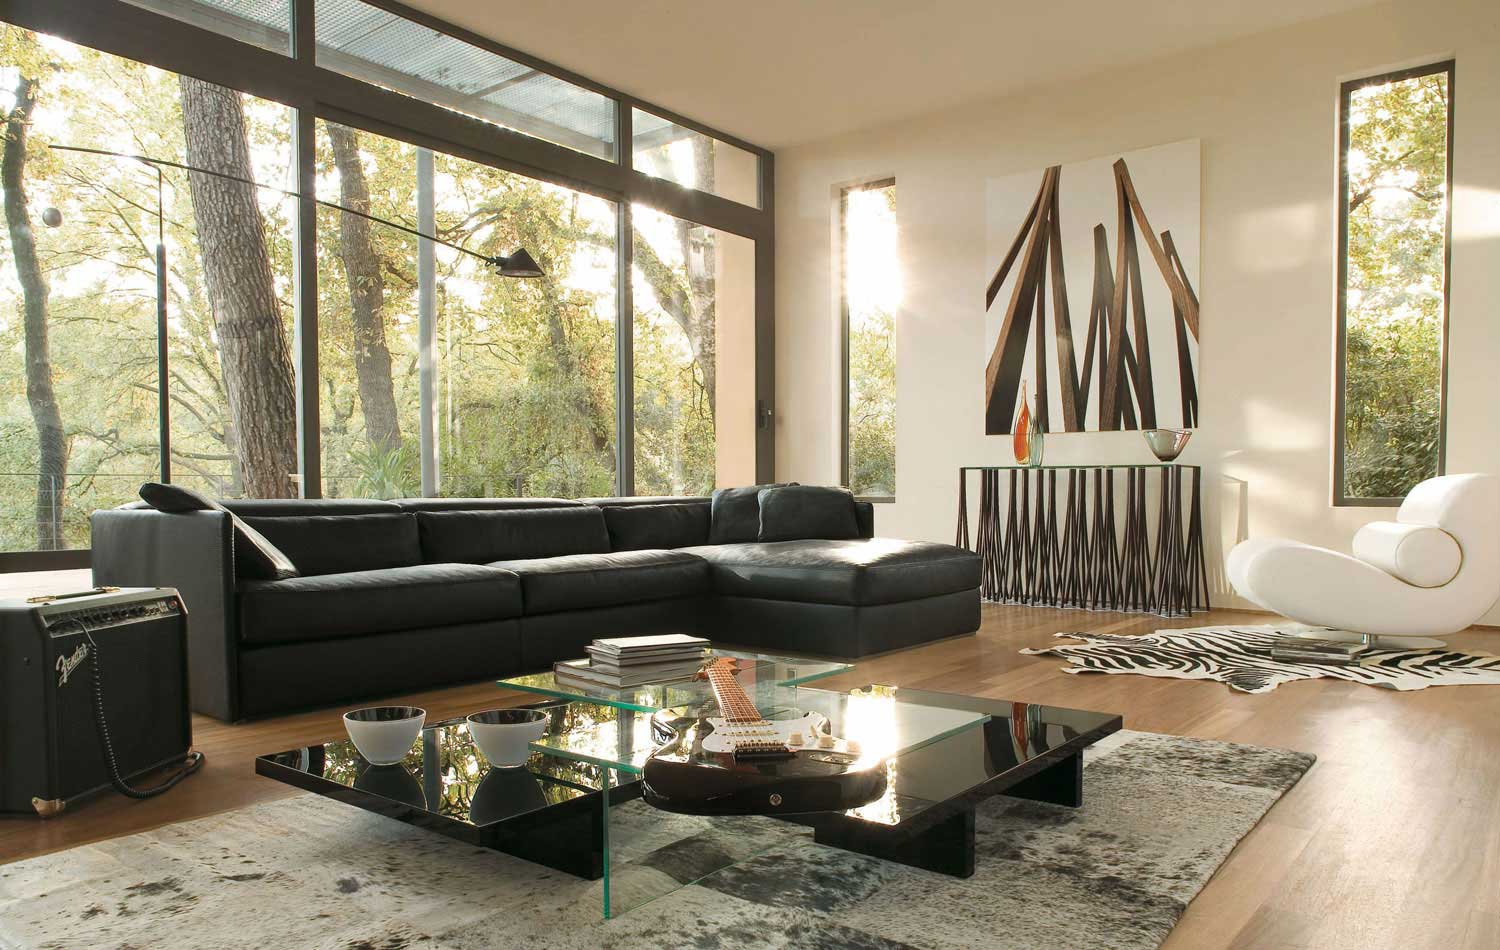 Ravishing Living Room Decor With Black Sofa and Coffee Table